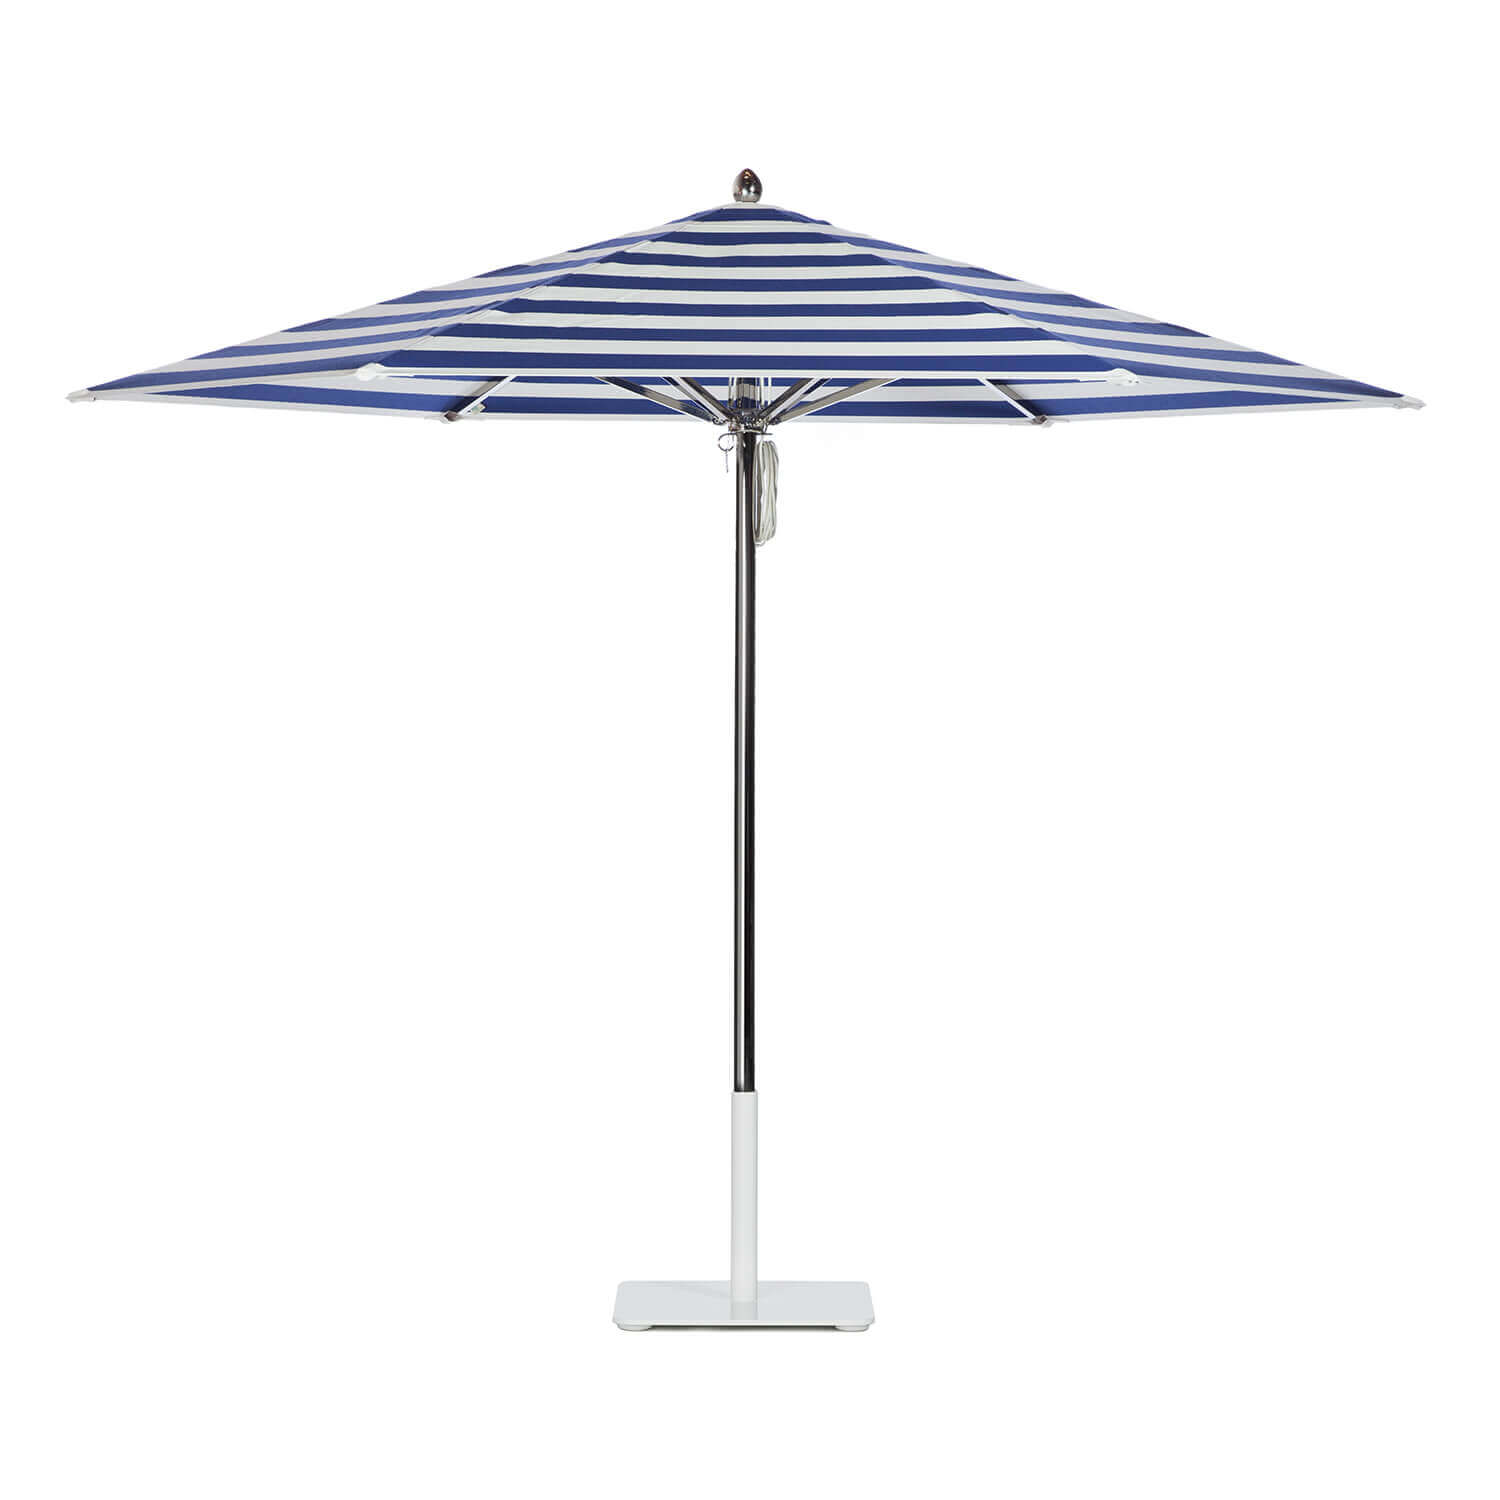 Cabana Navy Stripe Umbrella Image